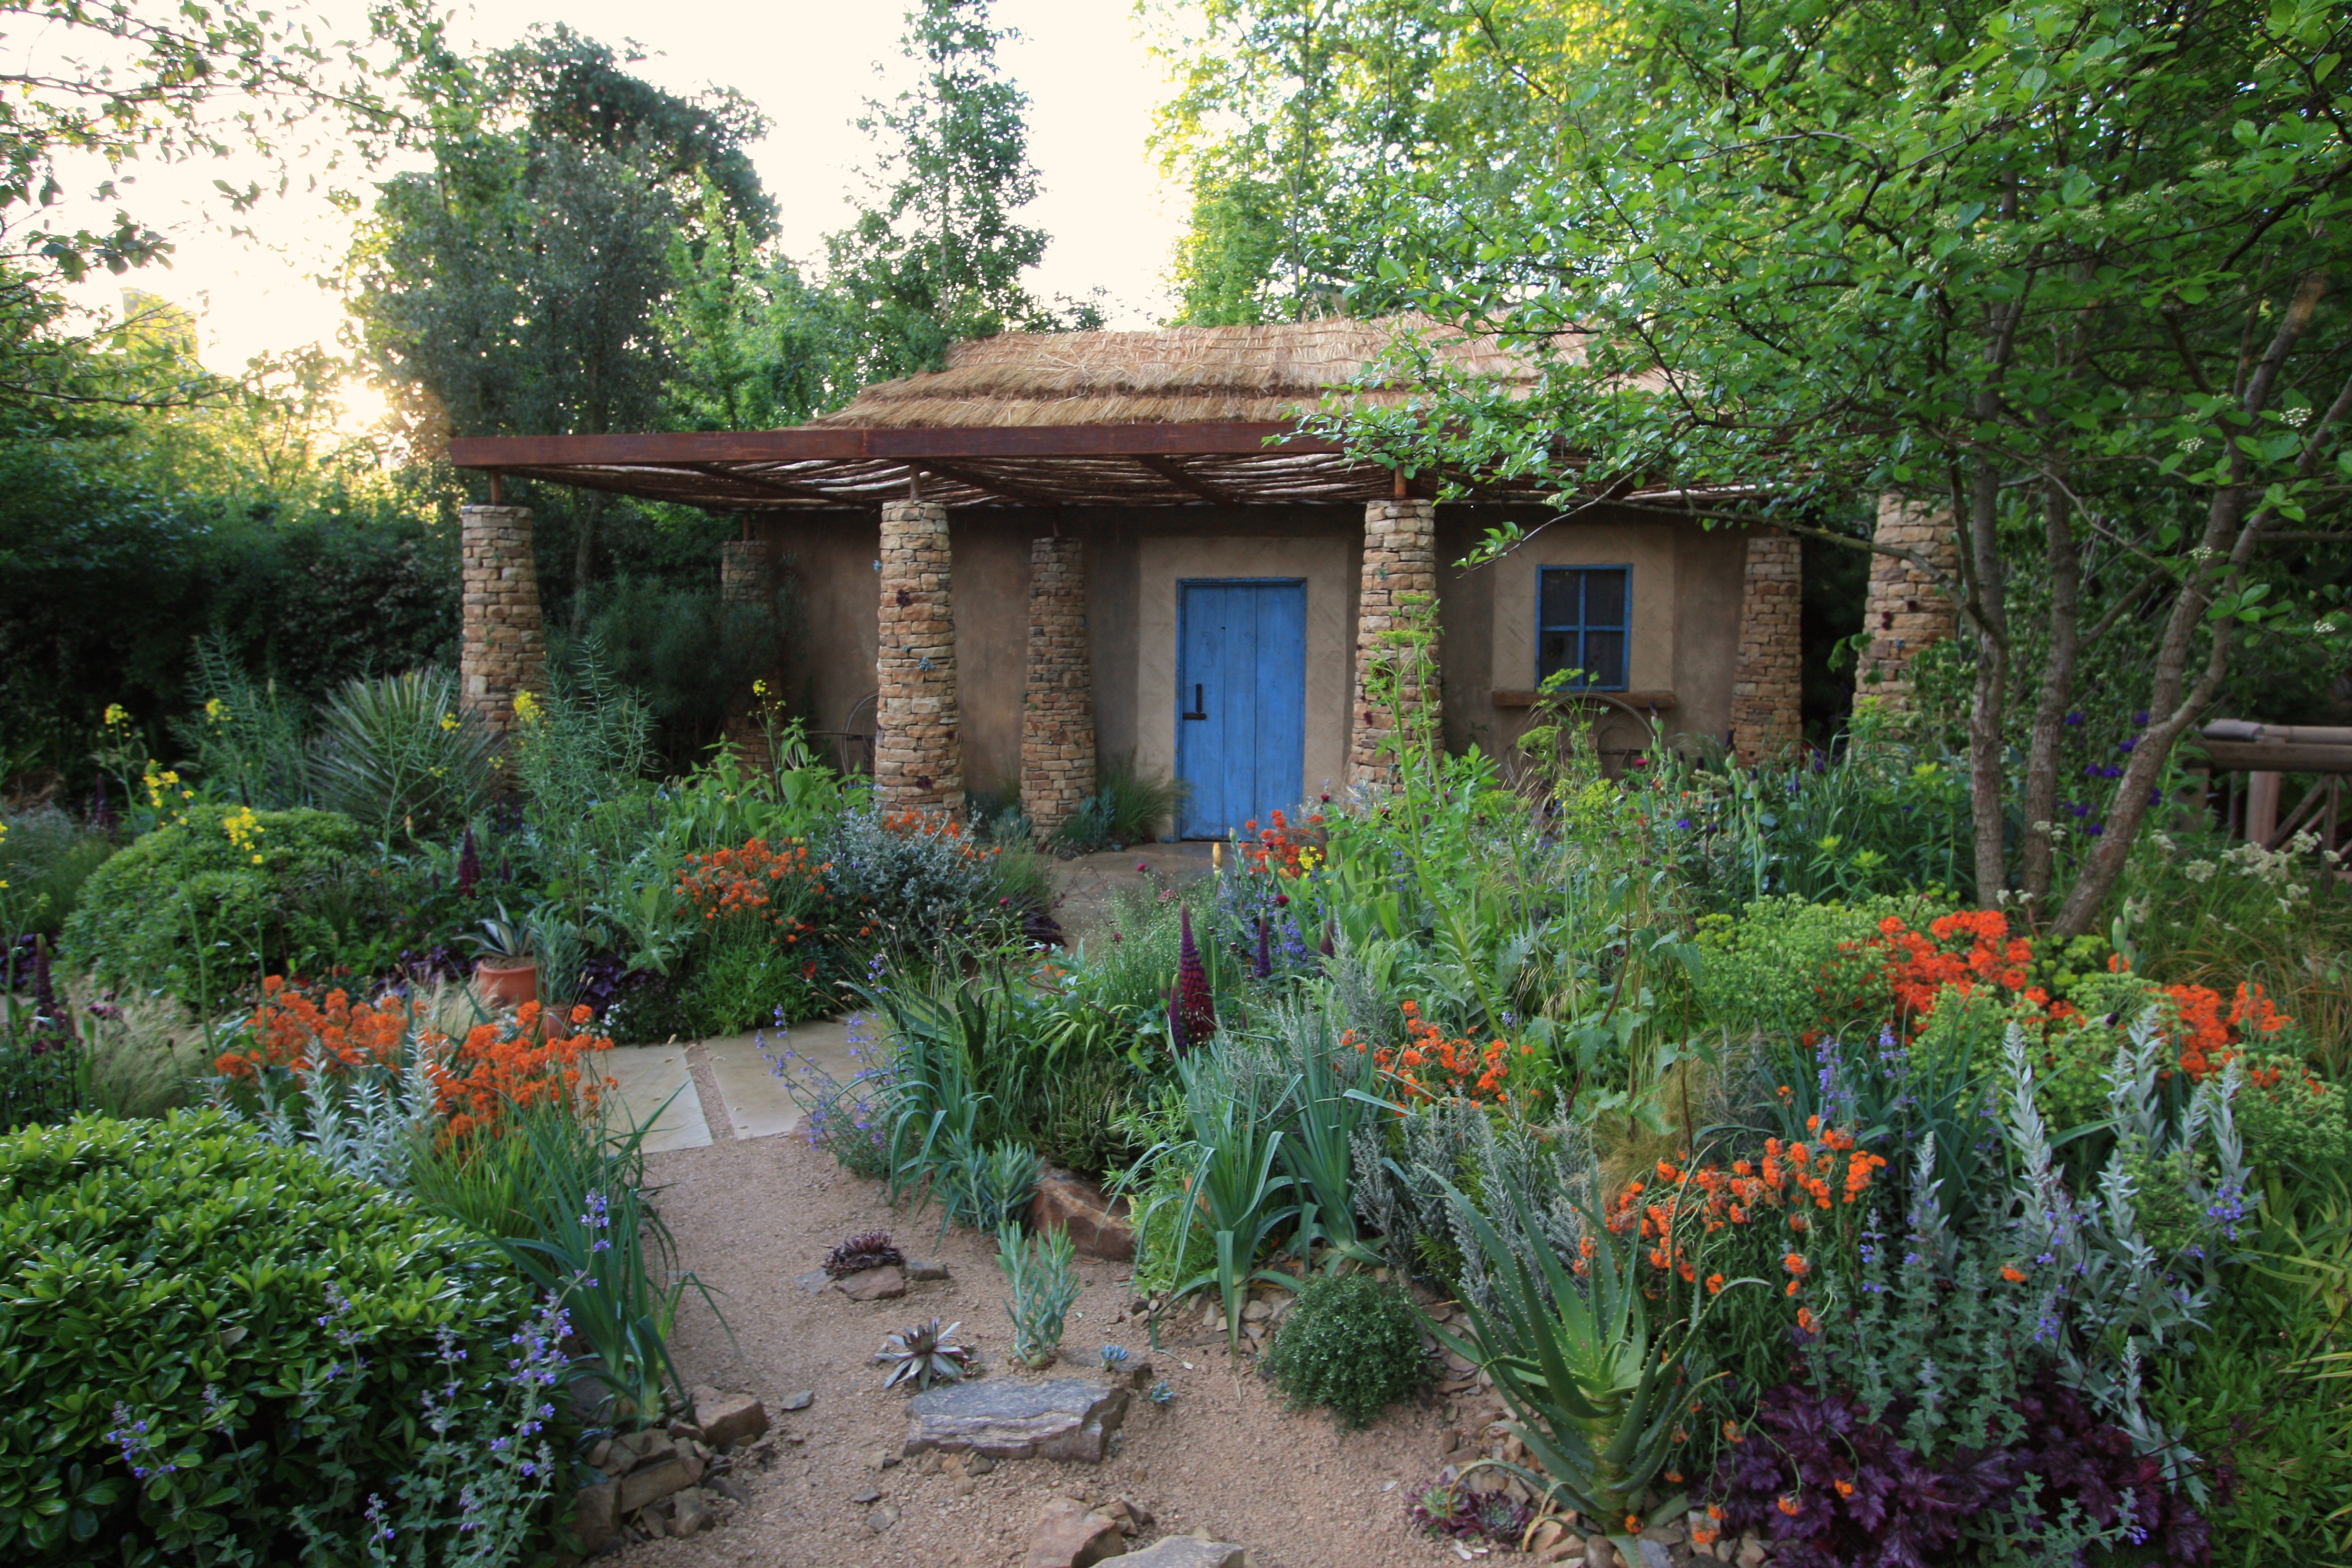 chelsea flower show 2015 – the people's choice: sentebale – hope in